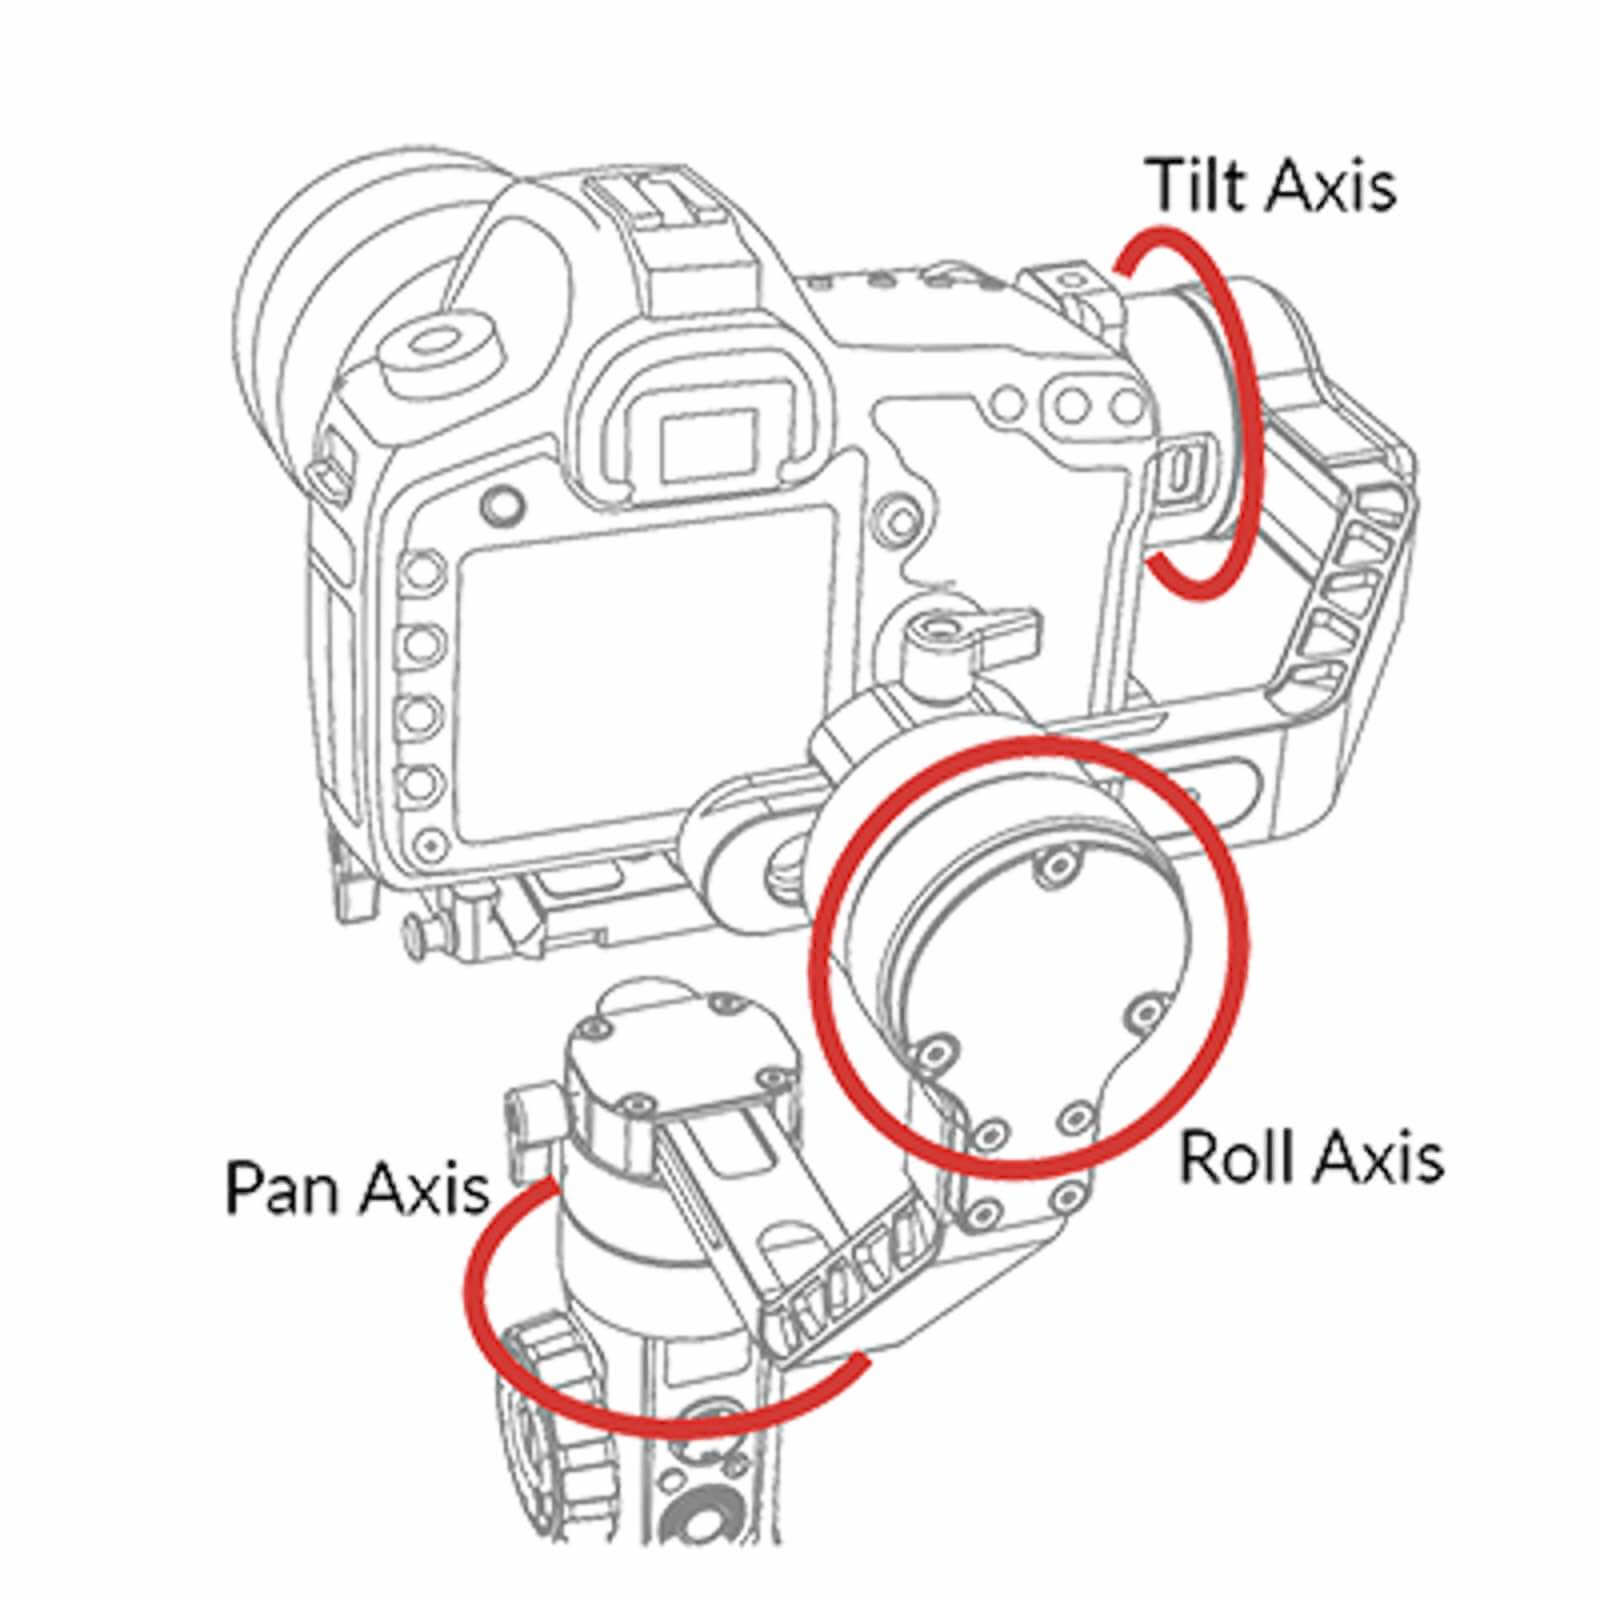 What is a Gimbal - 3 Axis Gimbal - Image